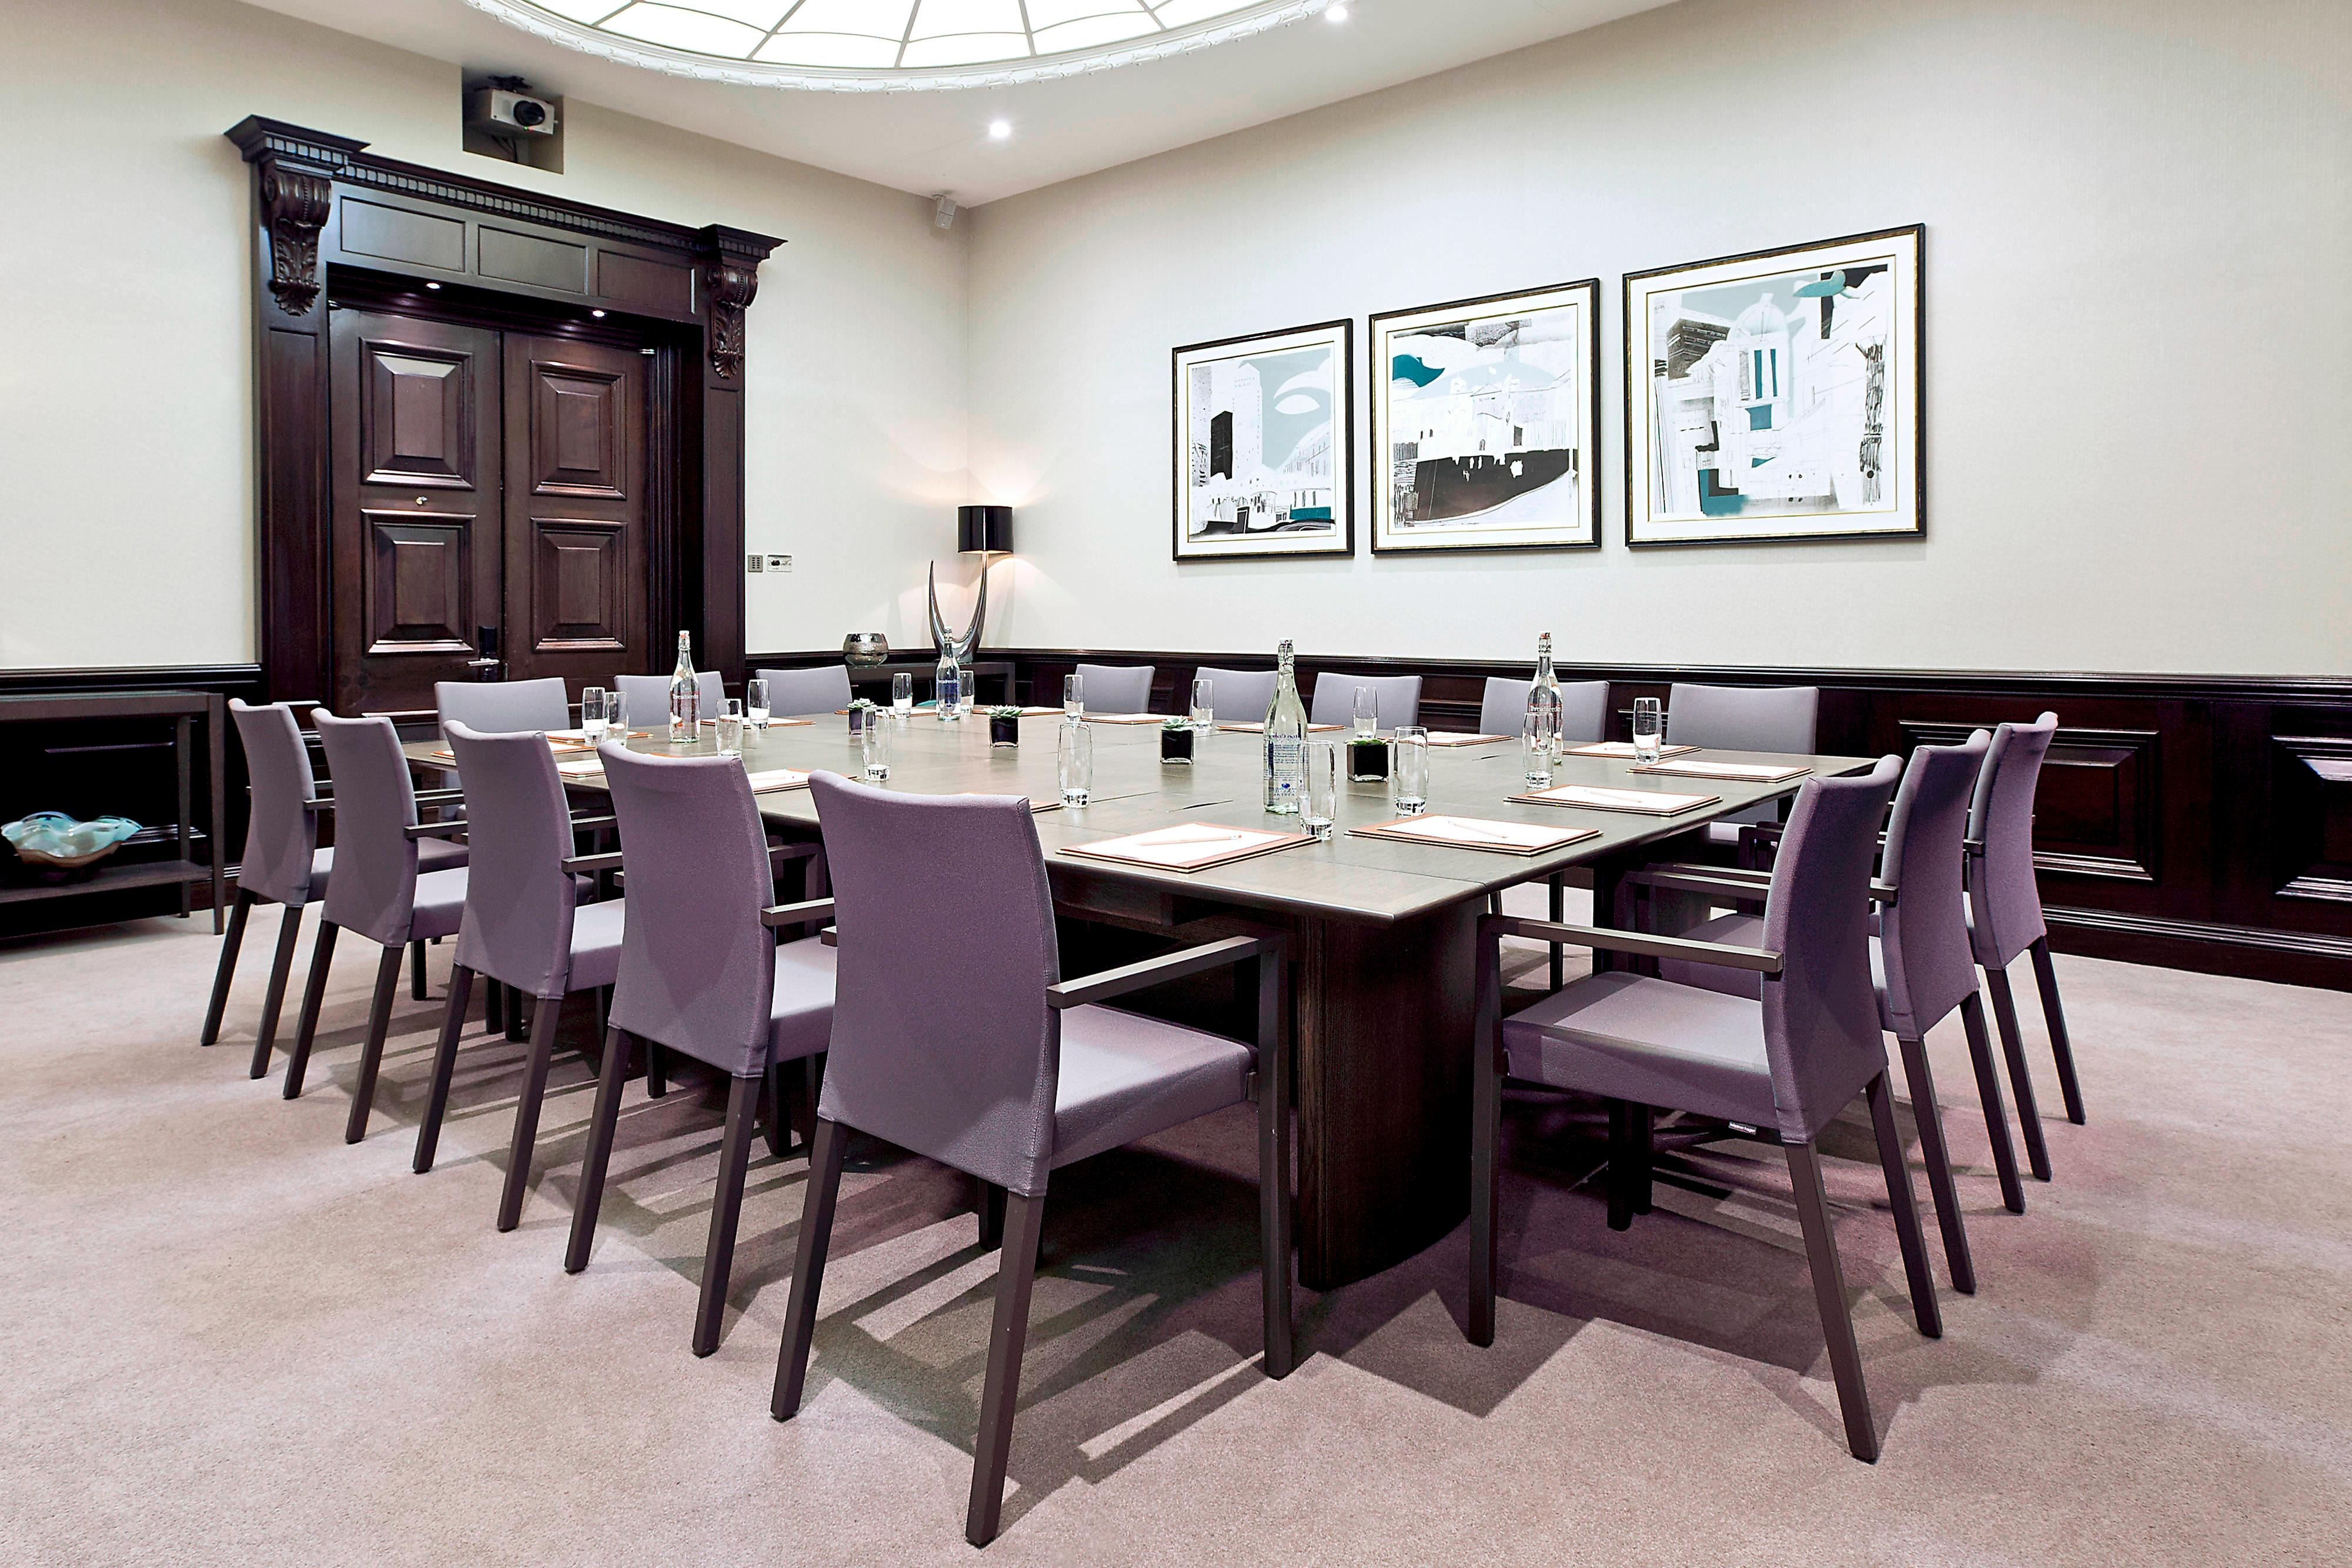 London hotel conference room